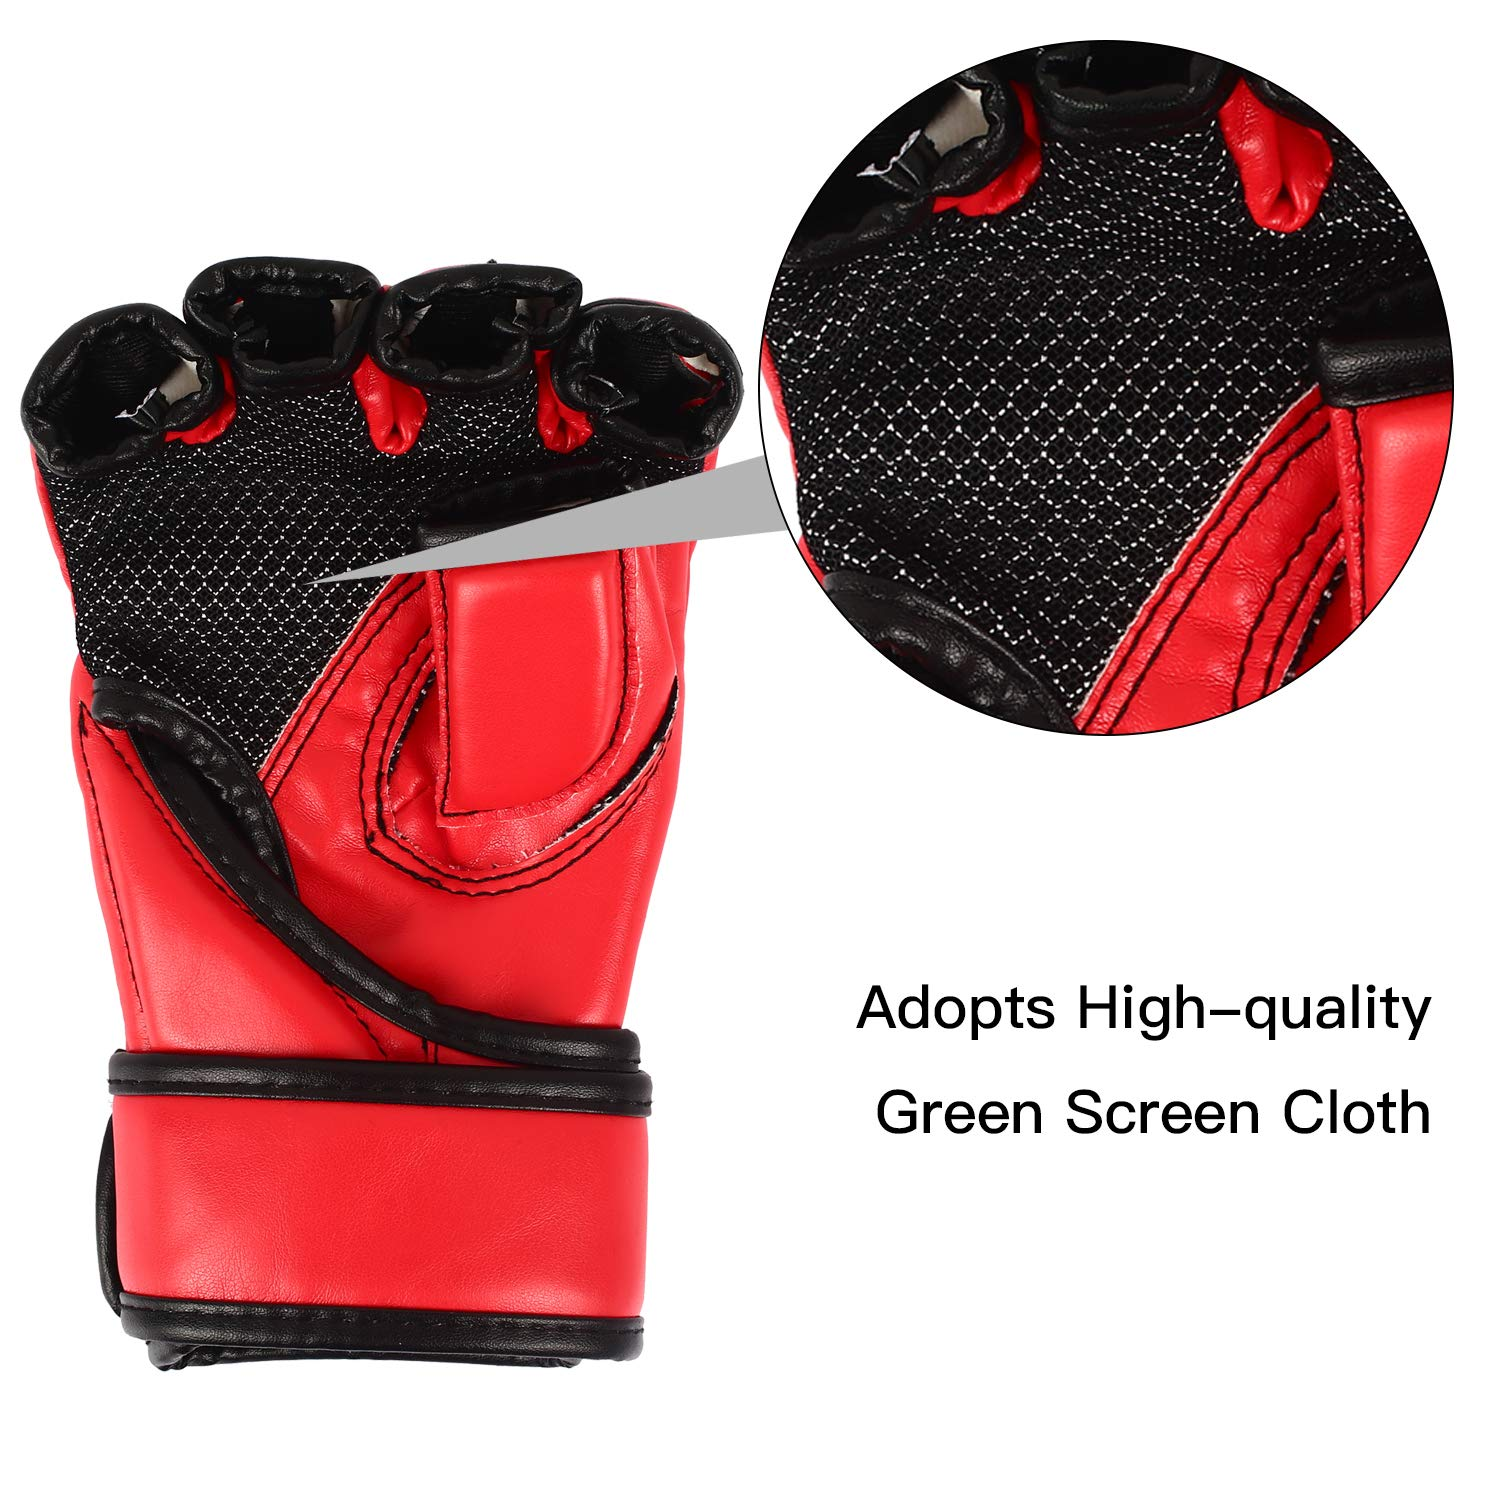 Sparring Brace Master Boxing Gloves MMA Gloves for UFC Training Men and Women Leather More Padding Punching Bag Gloves for The Kickboxing Muay Thai Heavy Bag